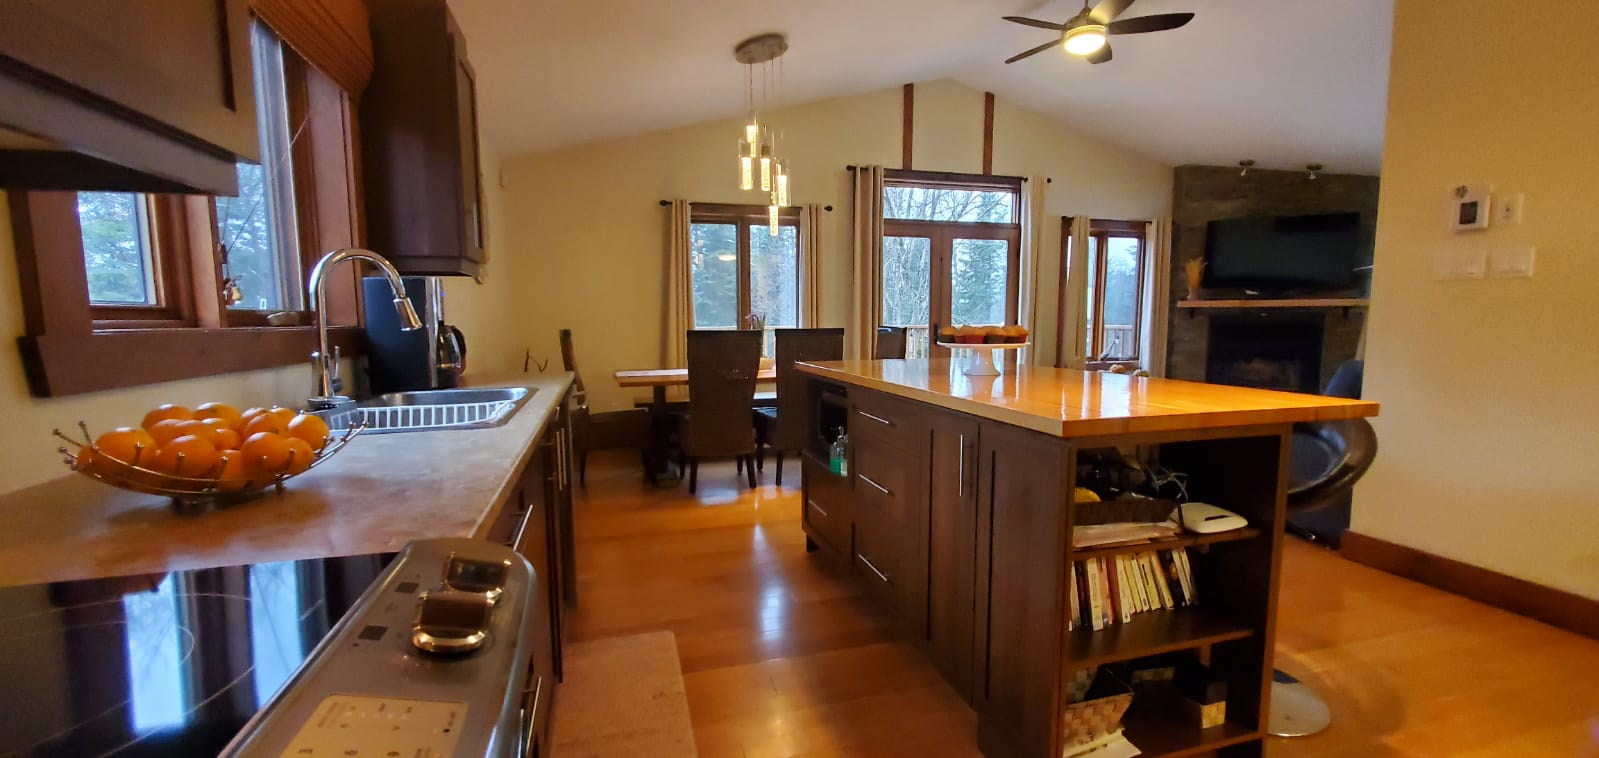 Cottages for rent for 9 people in Quebec #7